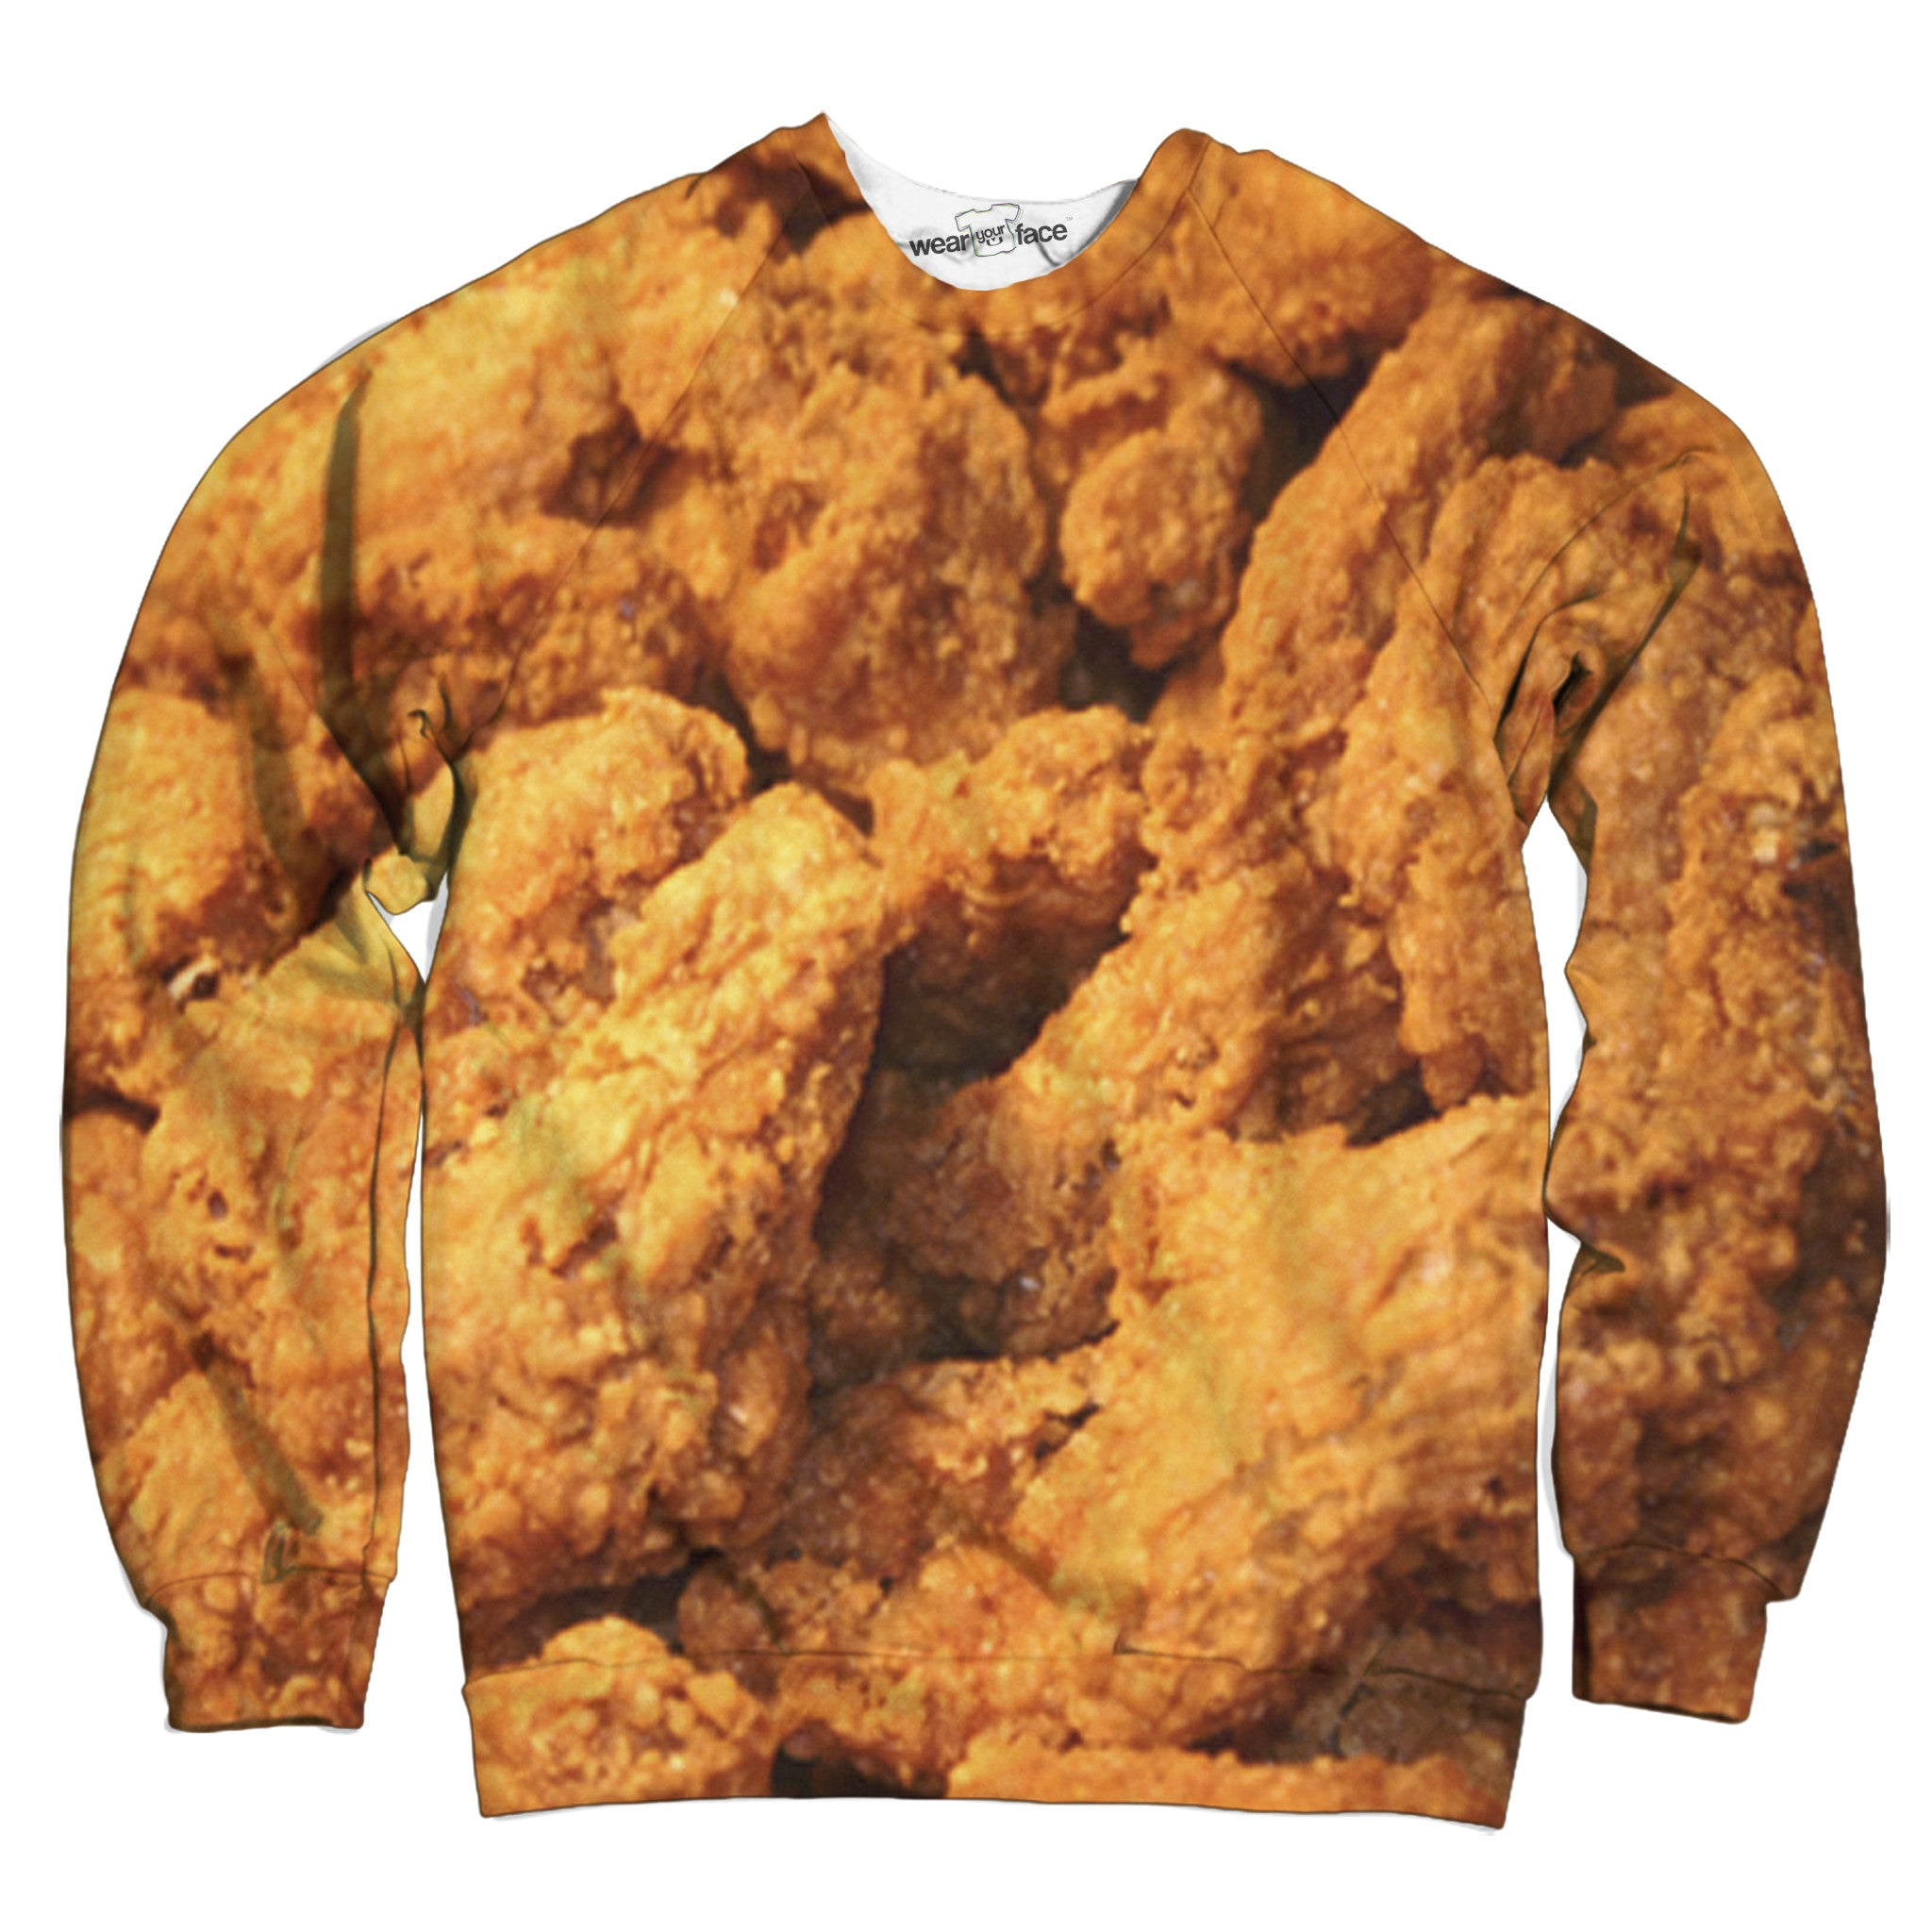 The Fried Chicken Sweatshirt